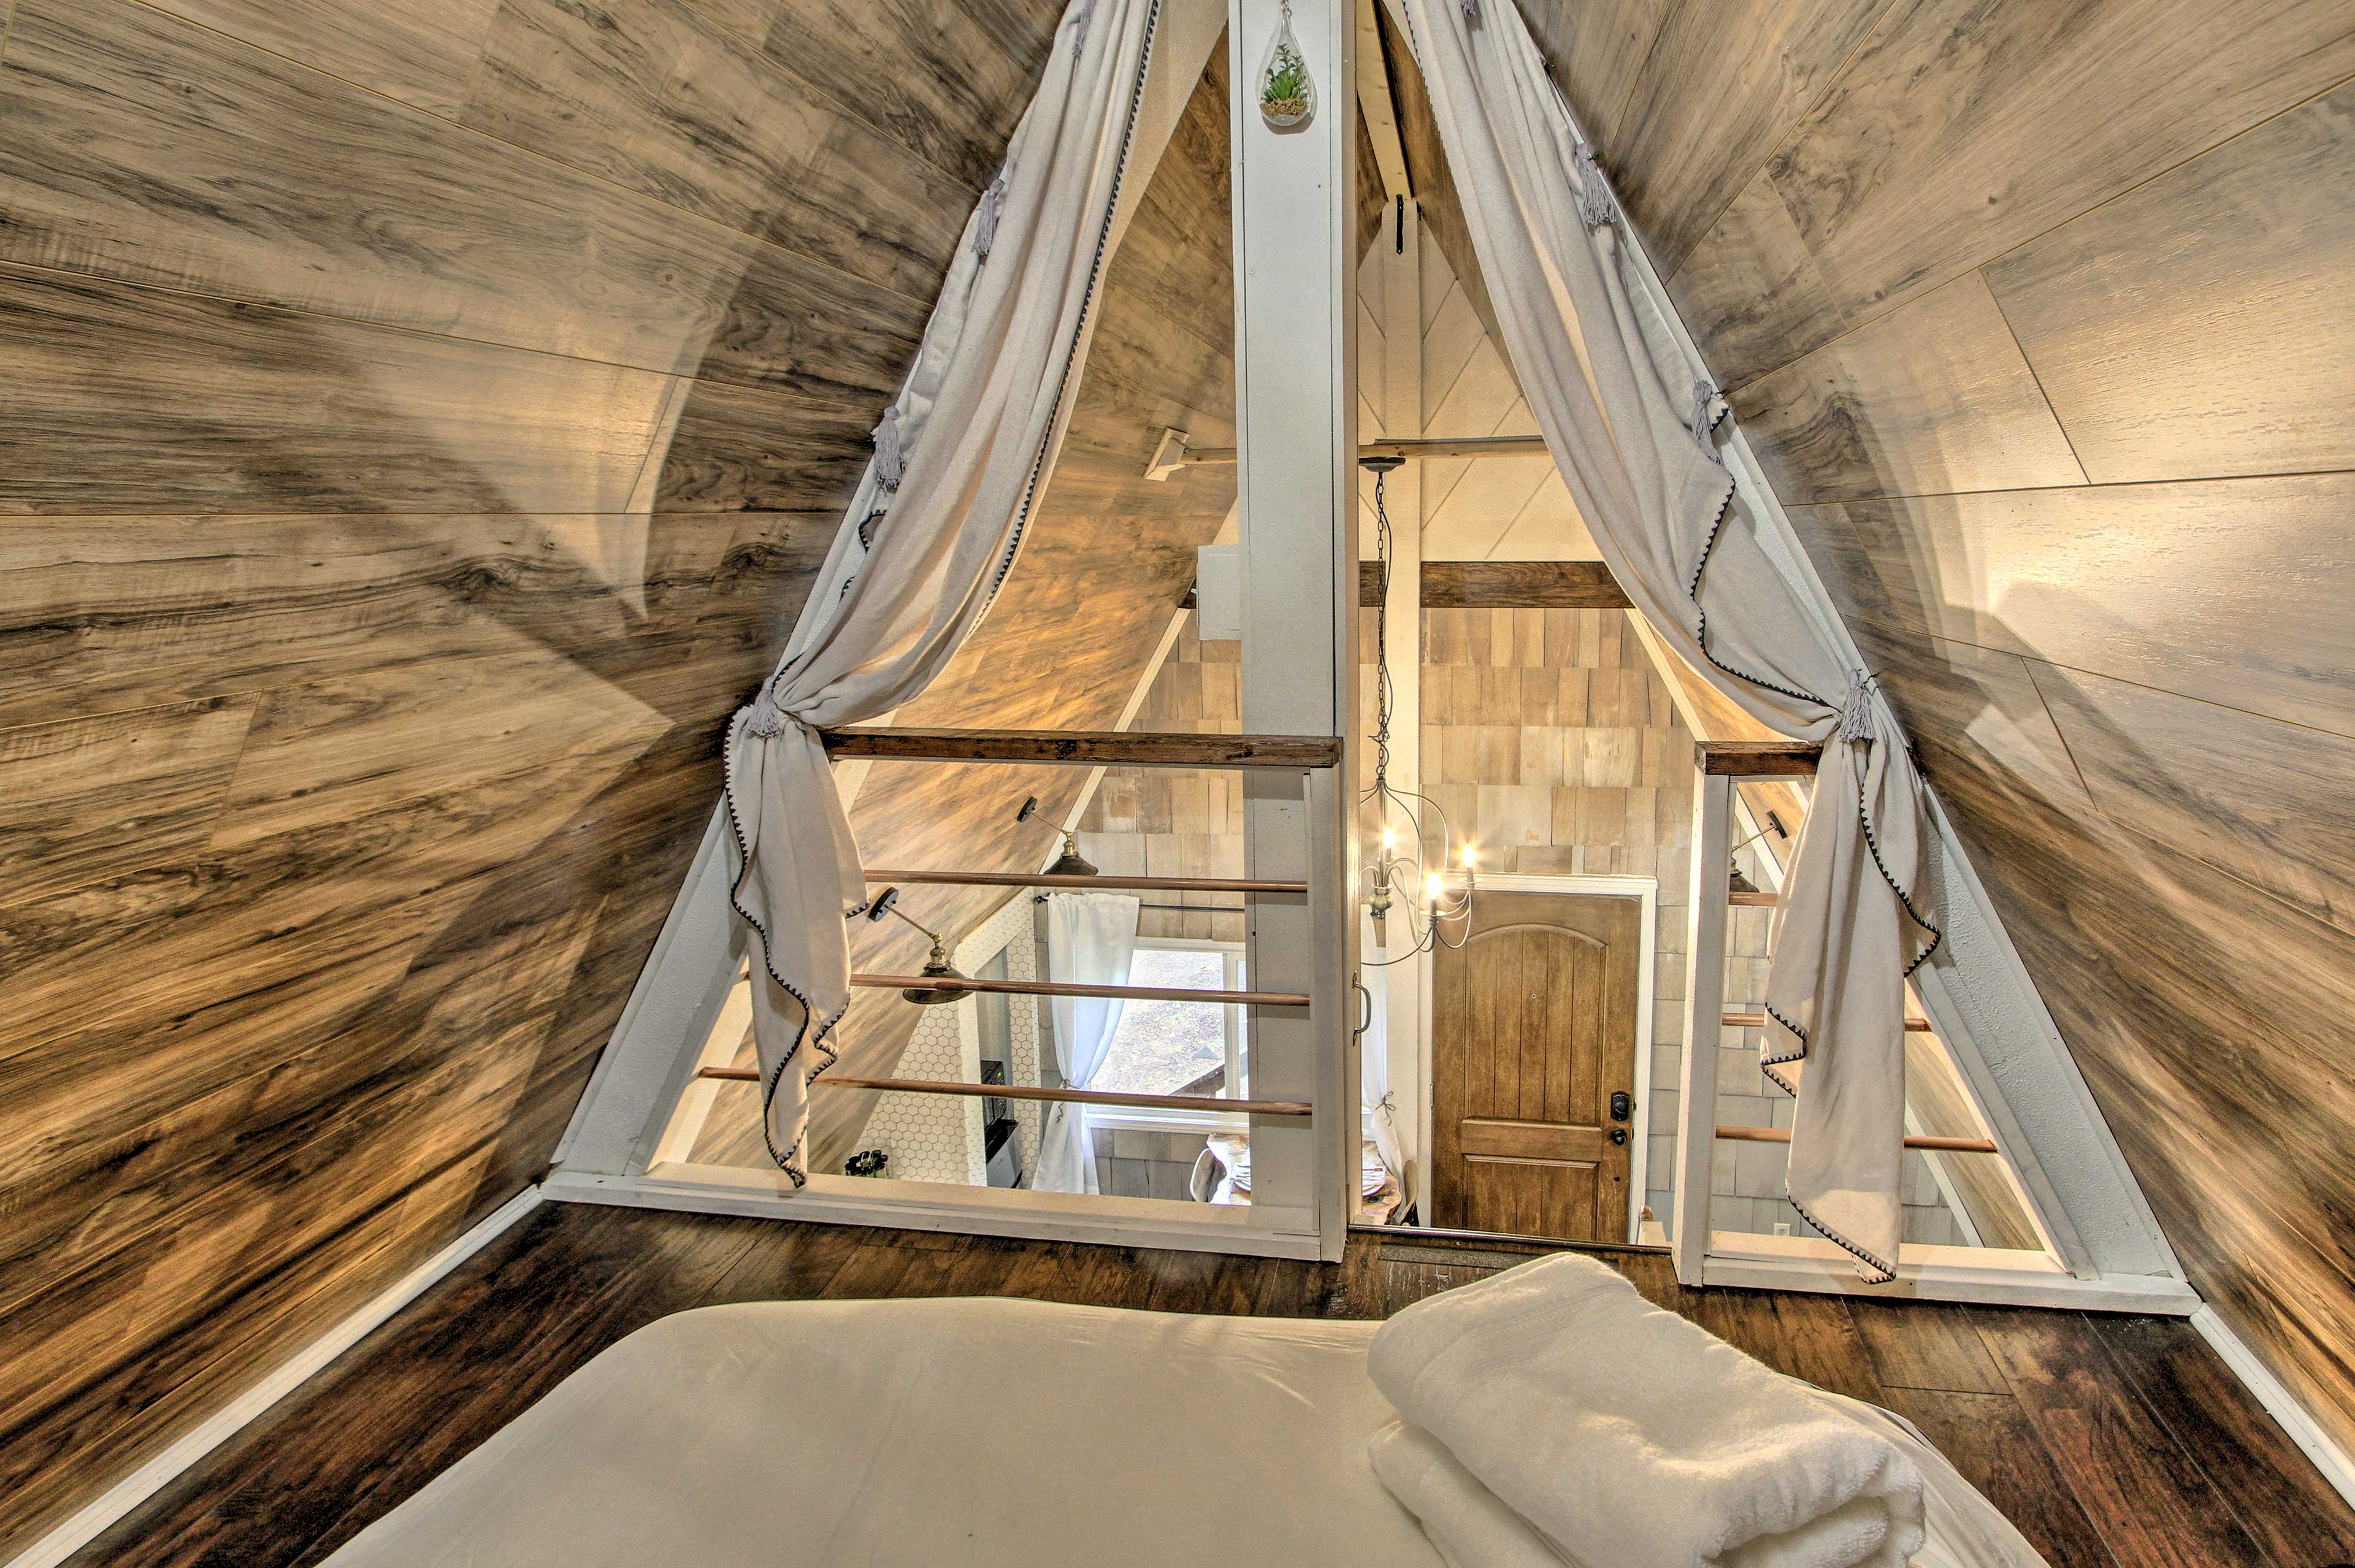 The loft houses a comfy full-sized bed.